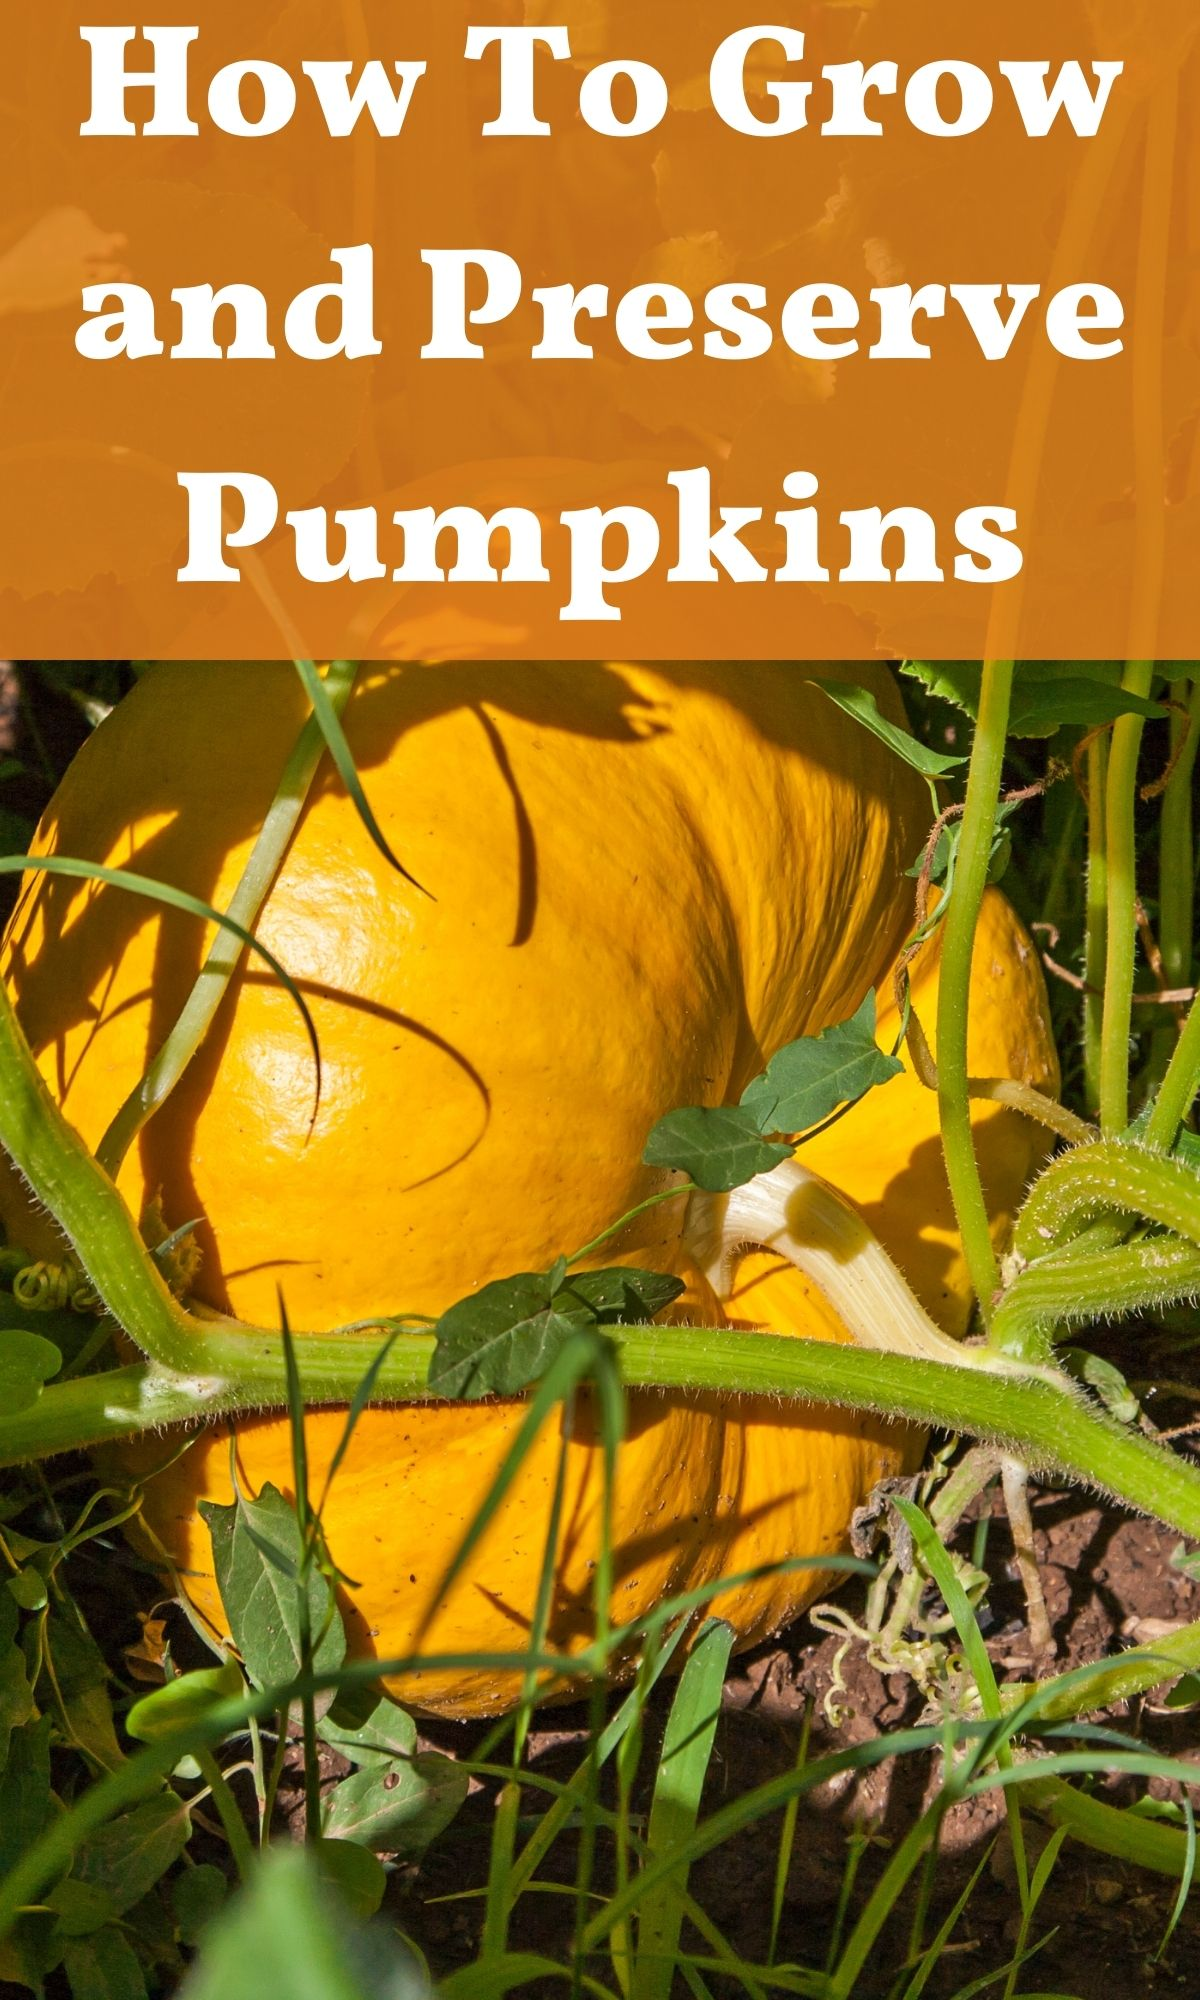 pumpkin growing in field for how to grow and preserve pumpkins